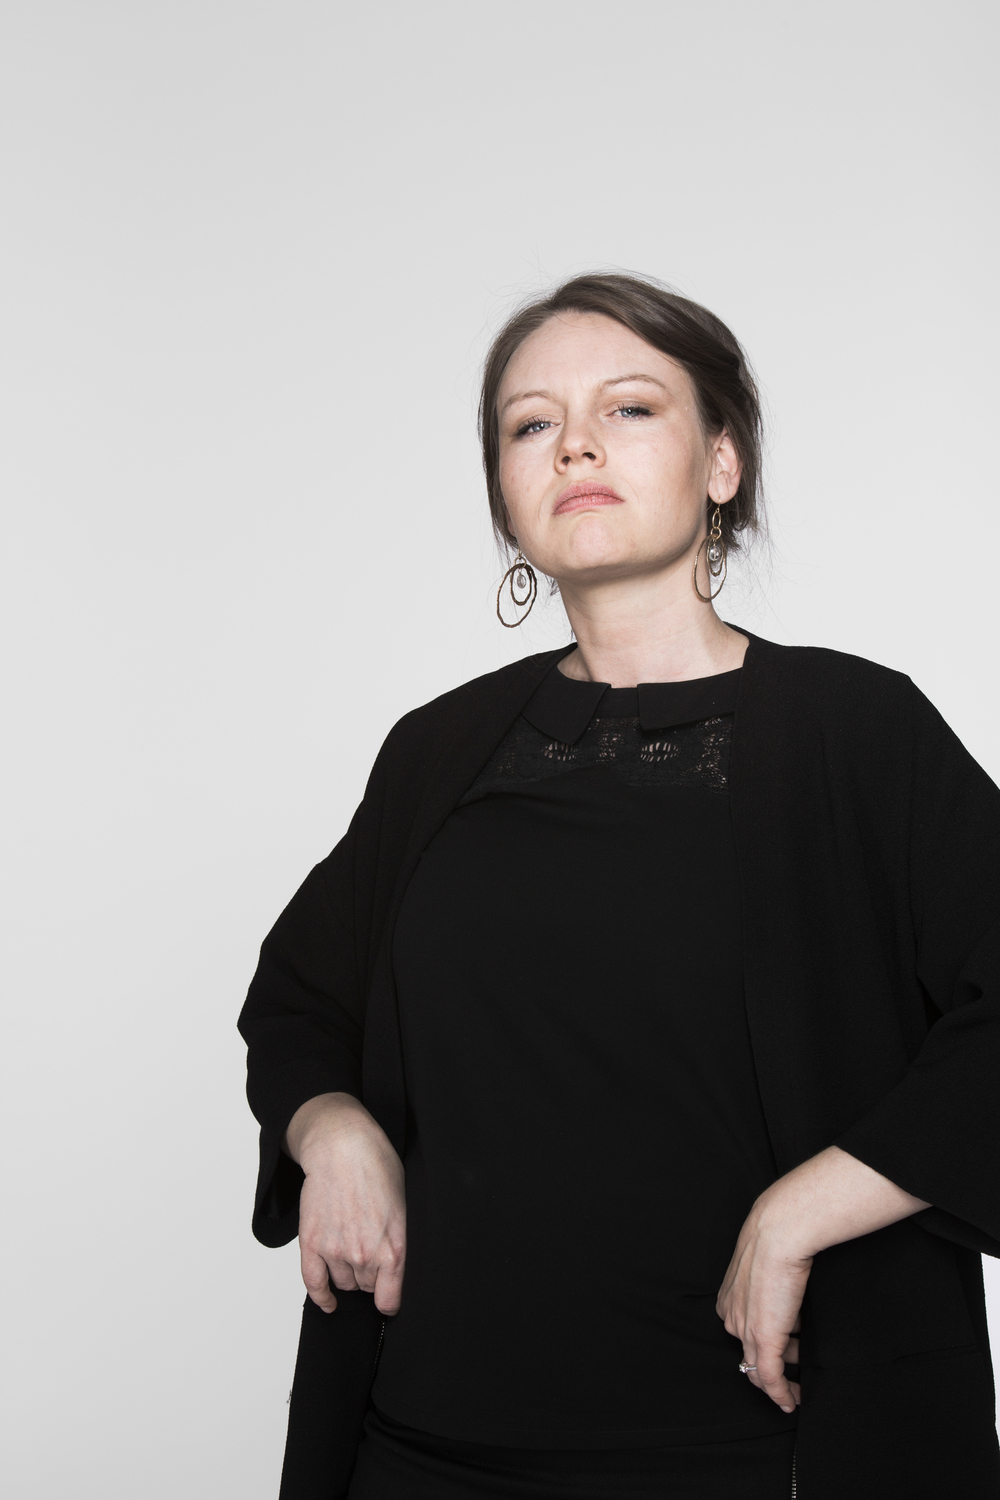 Susanne Skjørberg - One of the founders of the feminist blog collective Maddam.no.